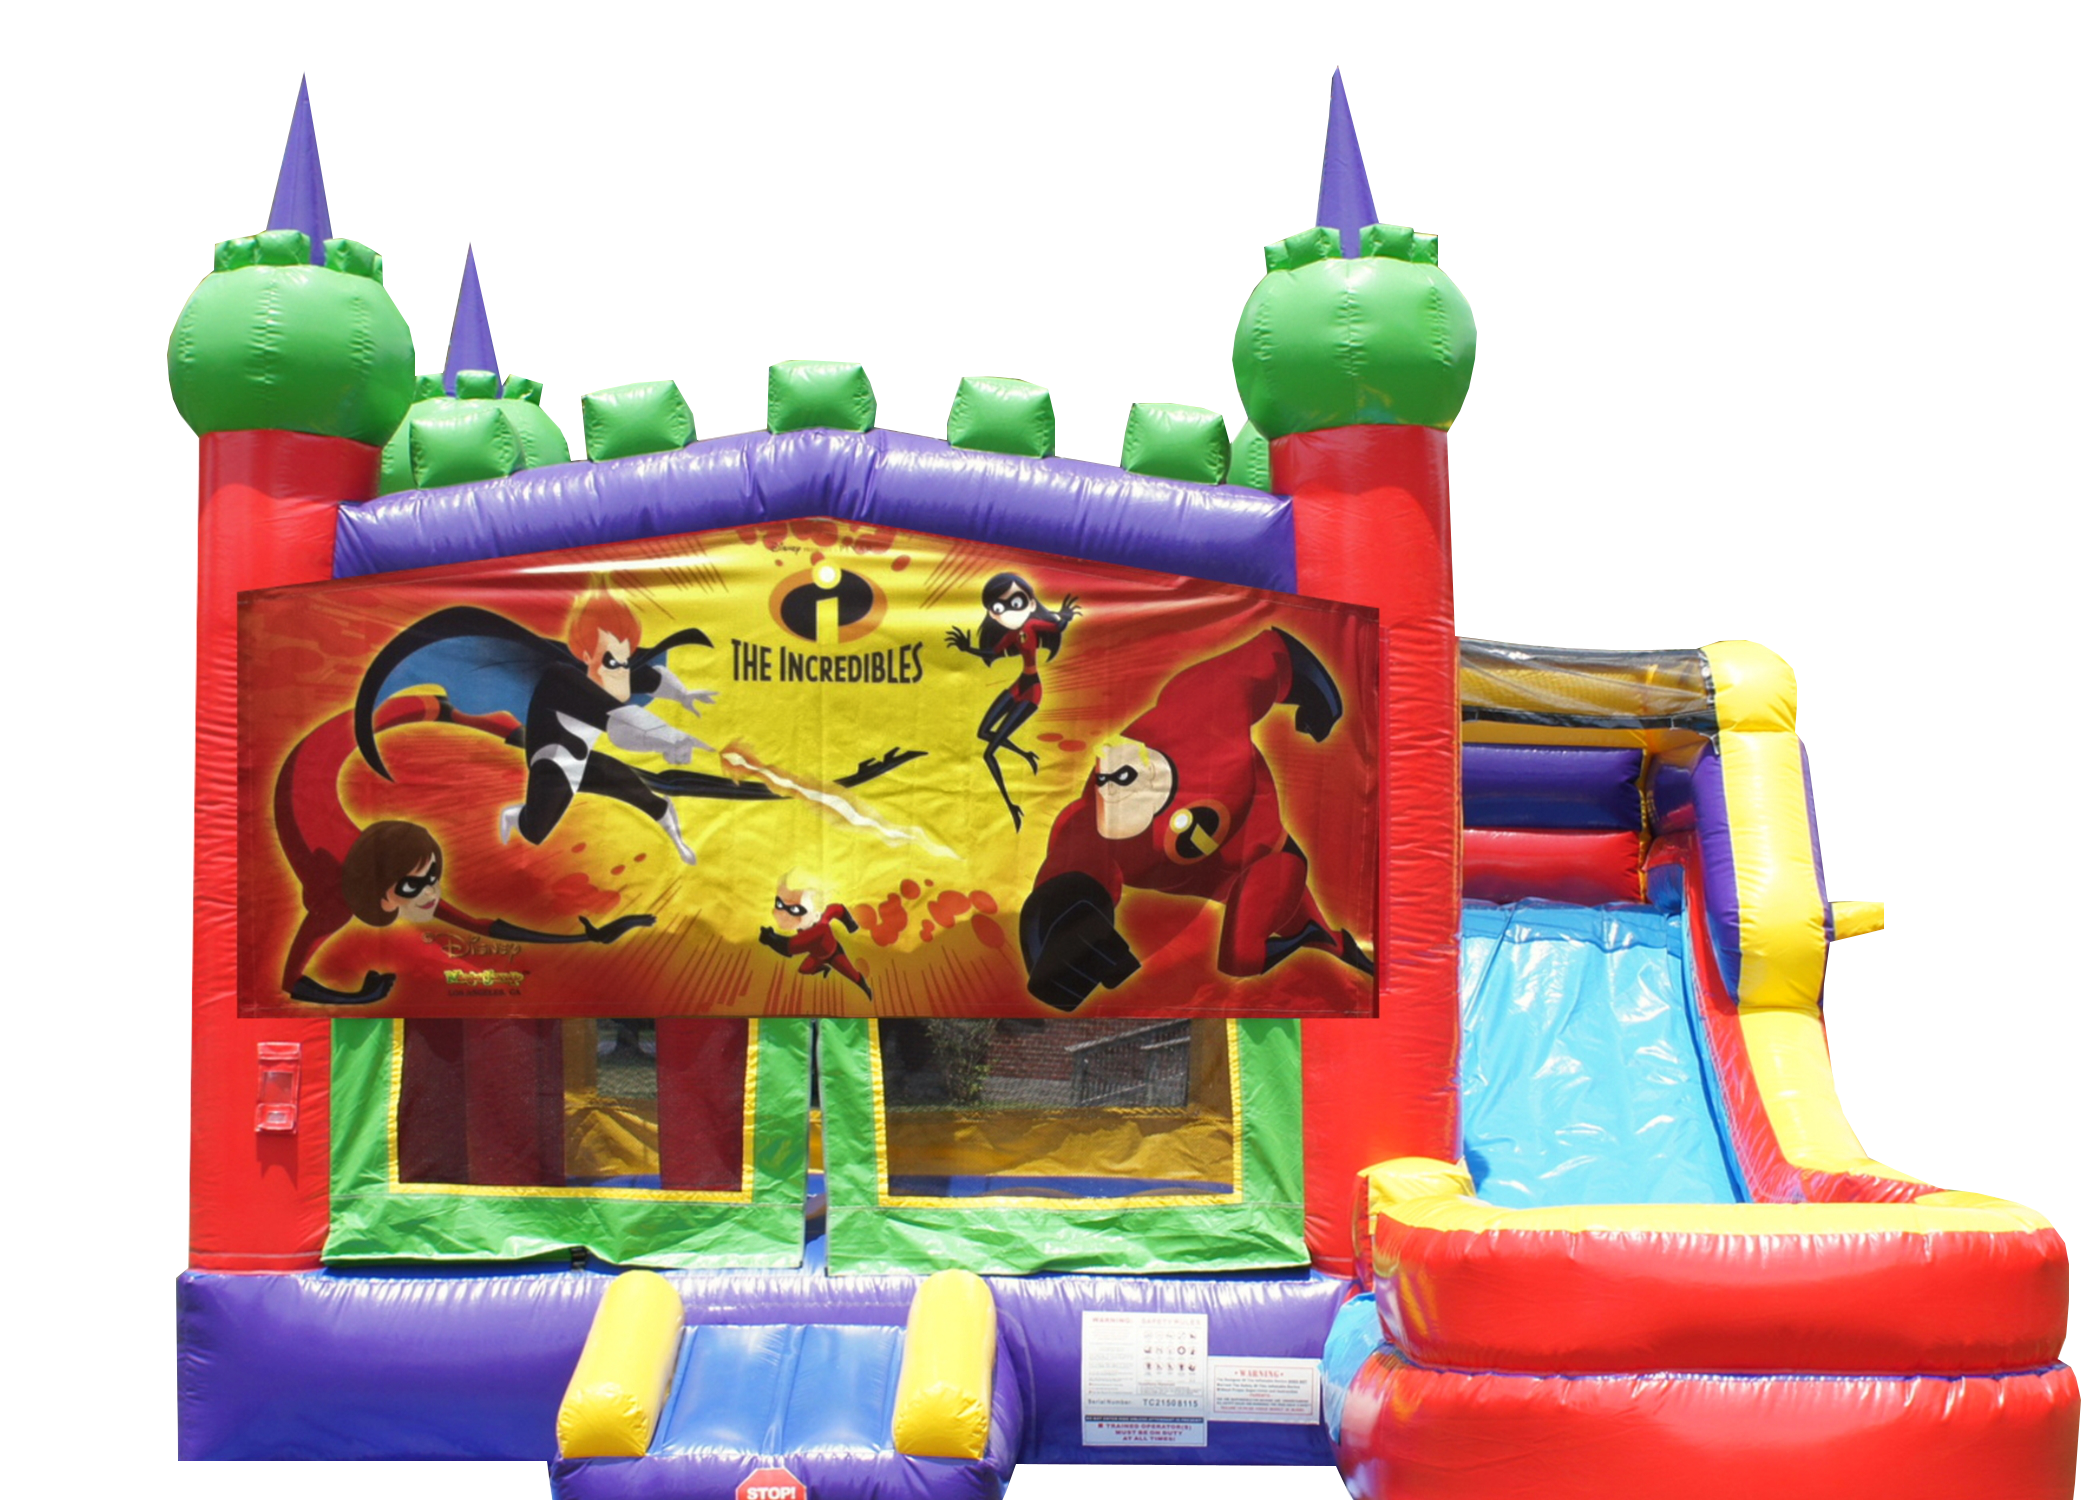 The incredibles combo bounce house rentals Murfreesboro